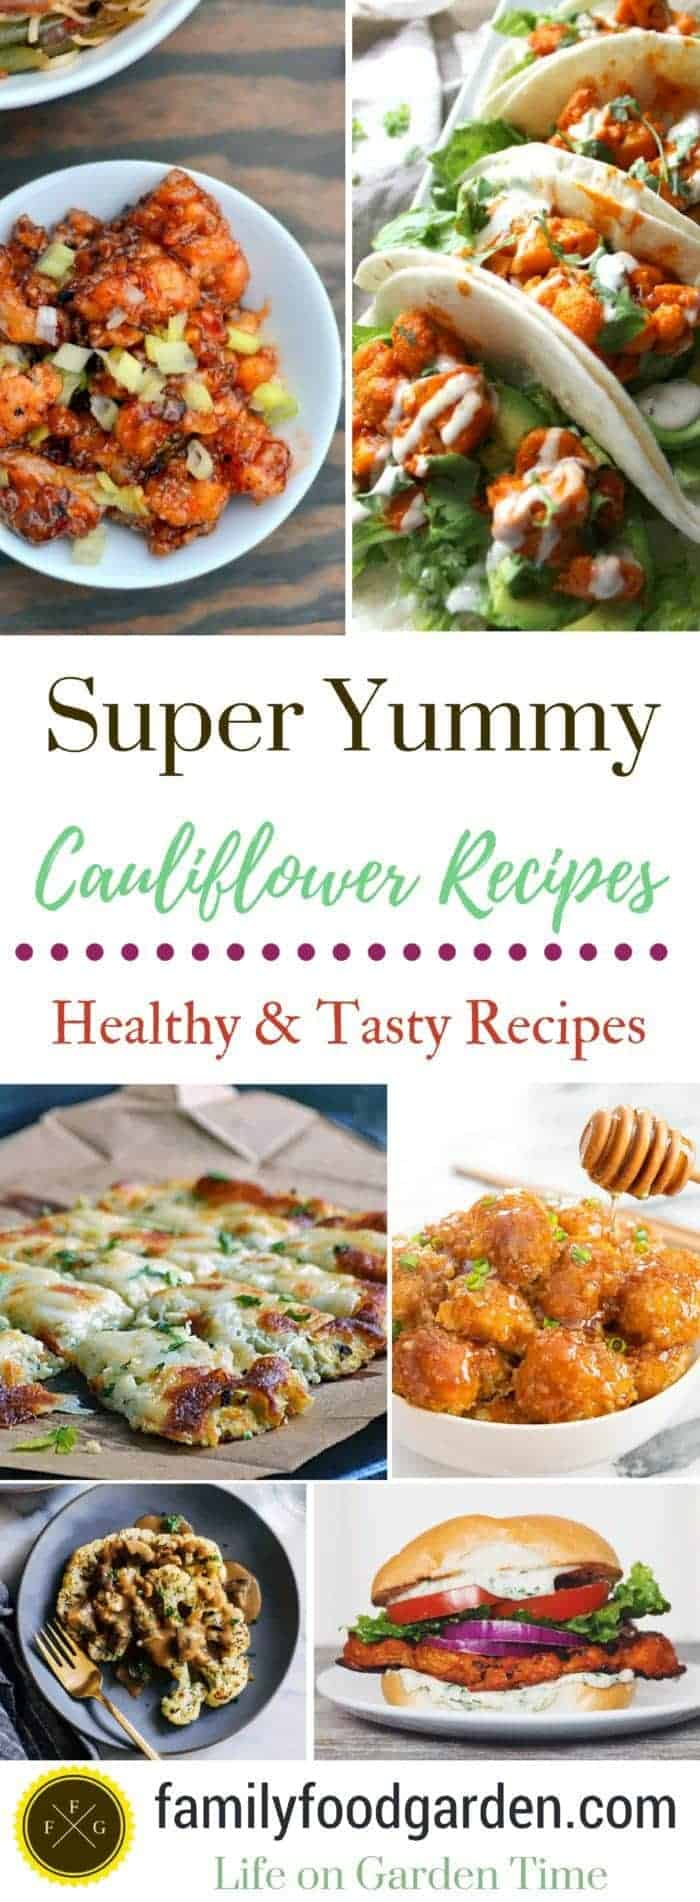 Tasty and healthy cauliflower recipes